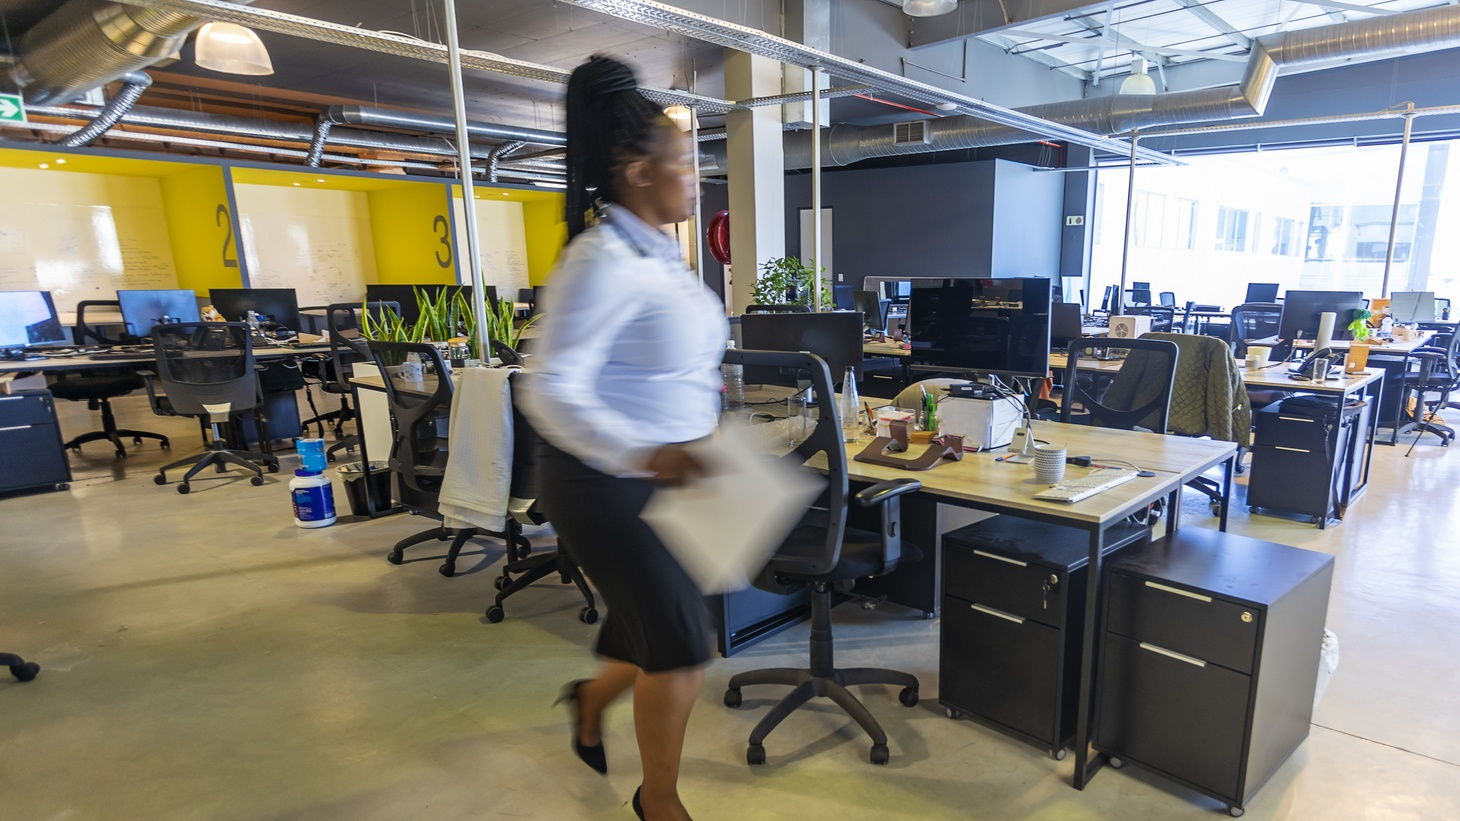 When returning to the office, employees can expect to still wear masks, physical distancing, new desk arrangements, and one-way hallways or stairways, according to pandemic planner Regina Phelps.